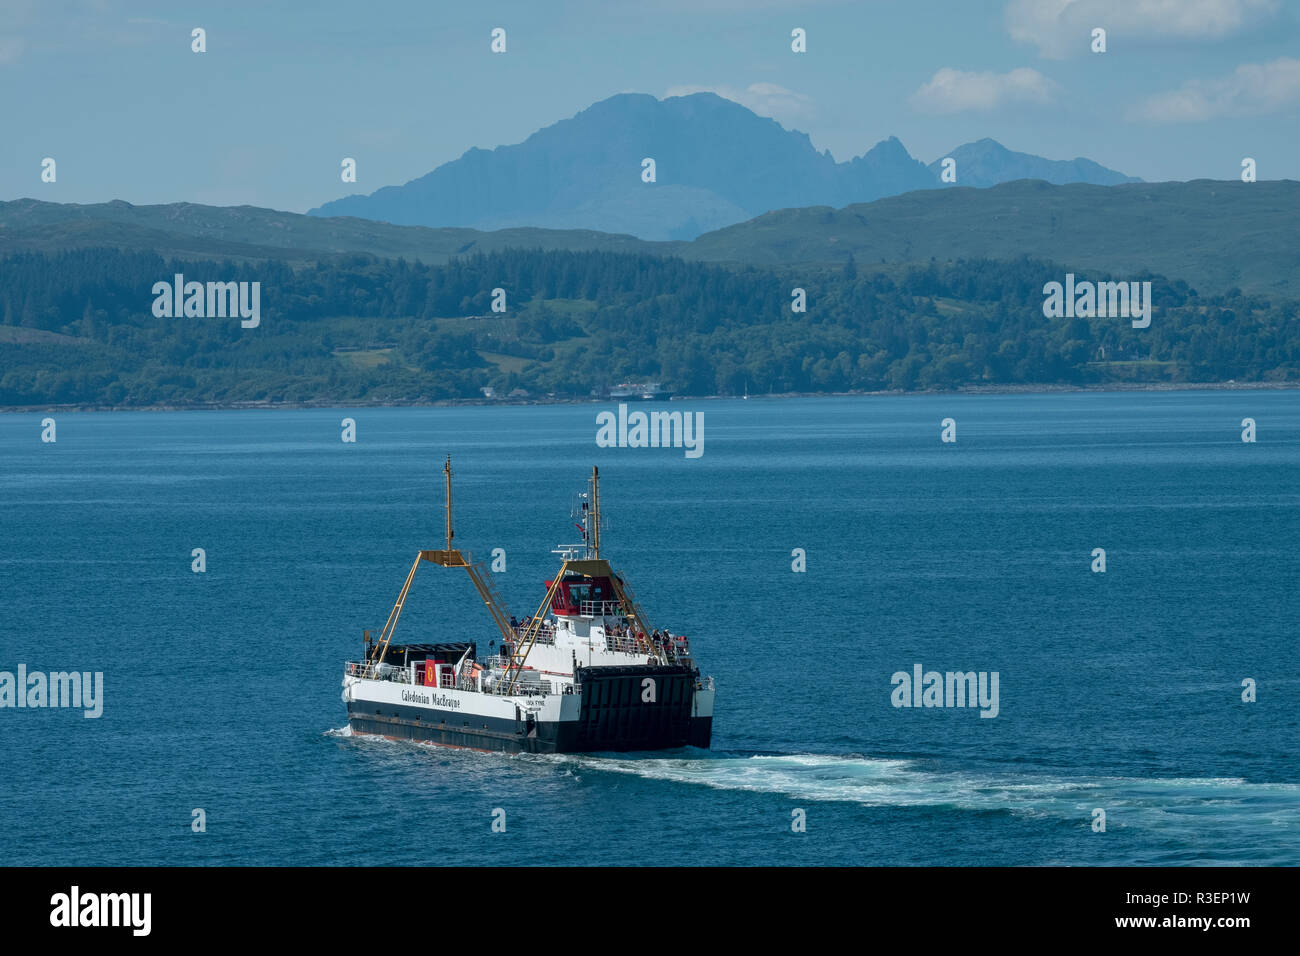 The Caledonian MacBrayne ferry, the MV Loch Fyne sails from Mallaig to Armadale on the Isle of Skye. - Stock Image